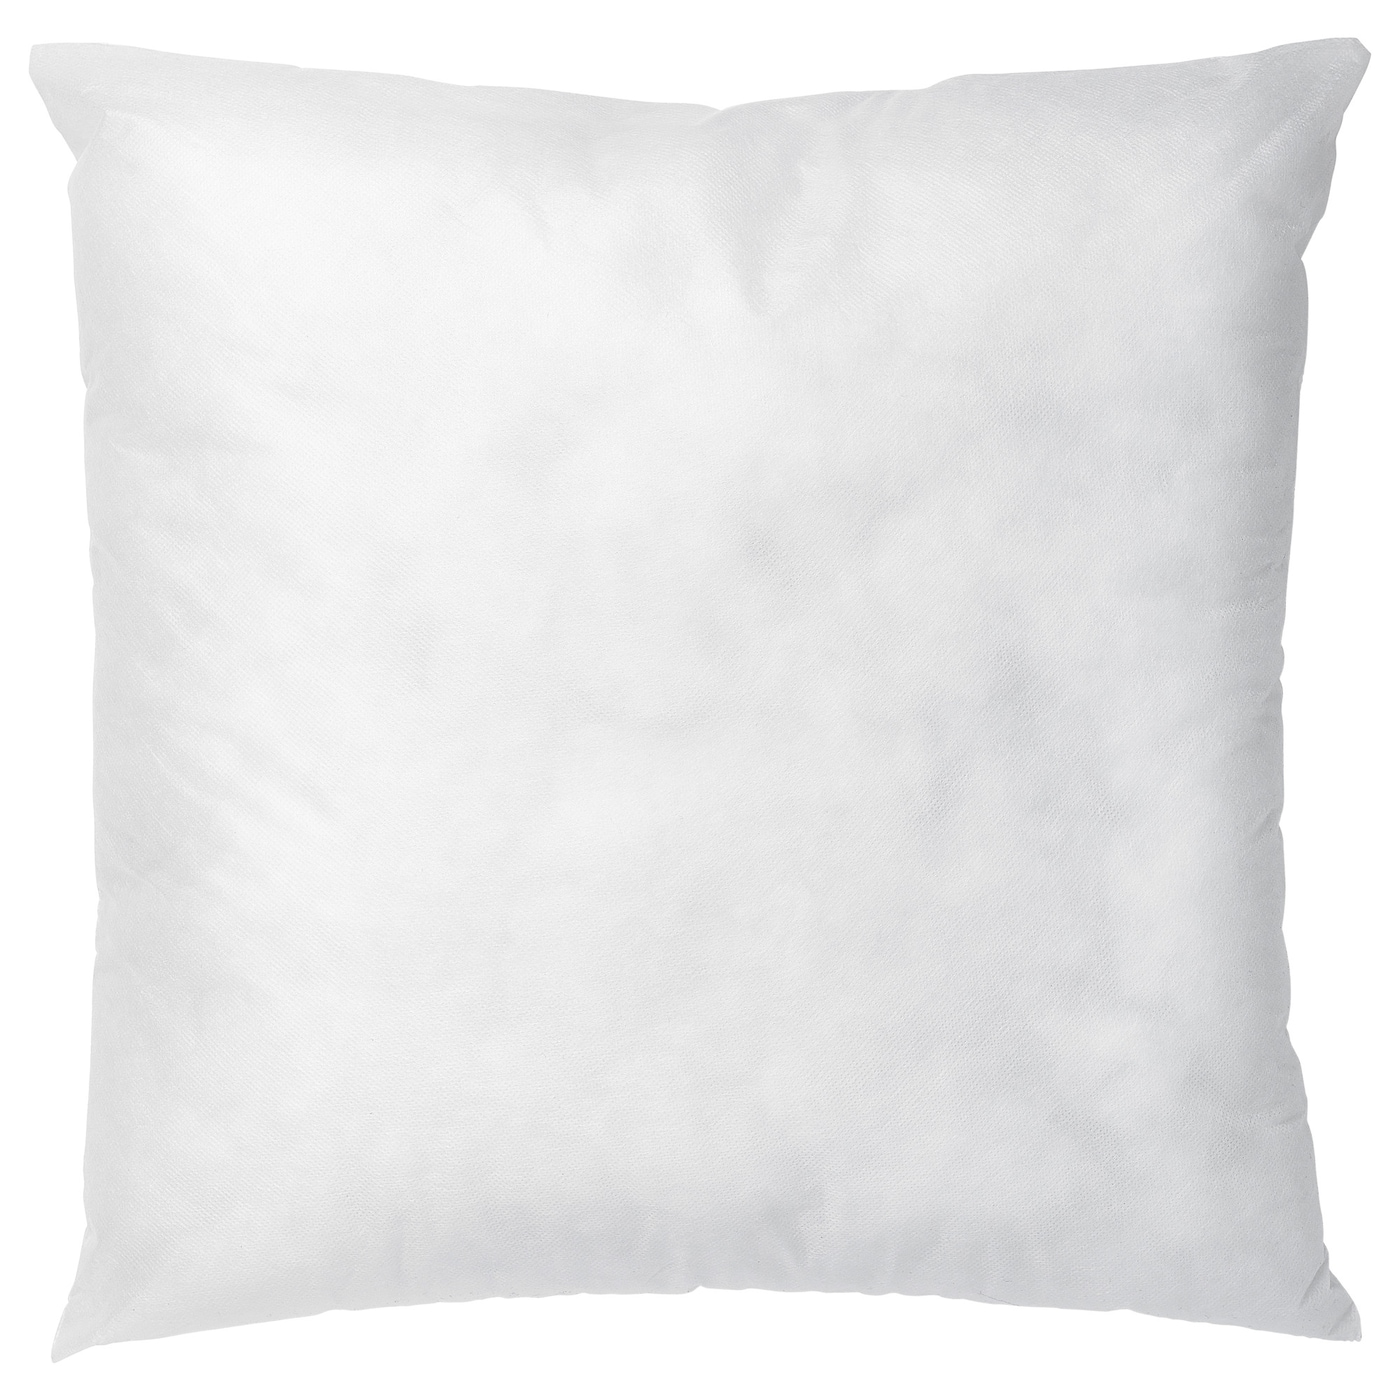 IKEA ISFRID inner cushion The polyester filling holds its shape and gives your body soft support.